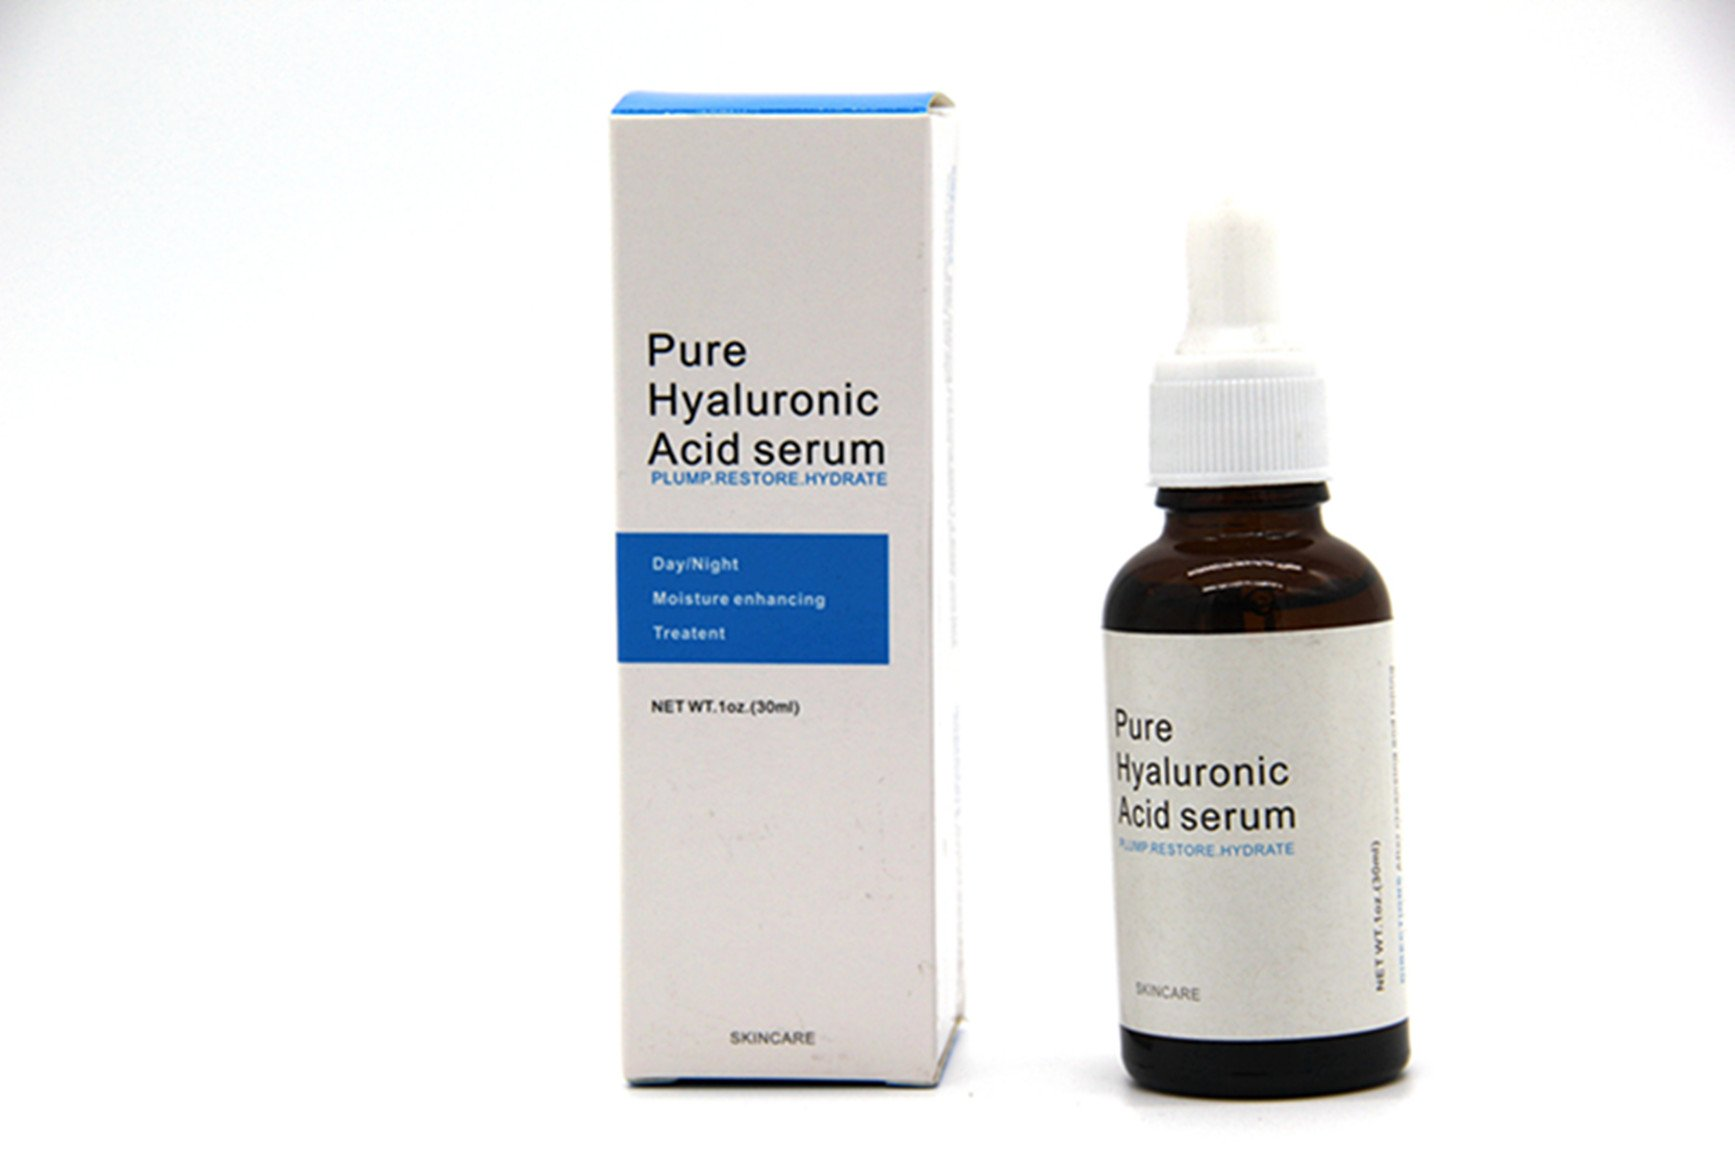 MZH 100% Pure Natural Moisturizer to Hydrate Skin Hyaluronic Acid Serum Facial Anti Wrinkle Serum by MZH